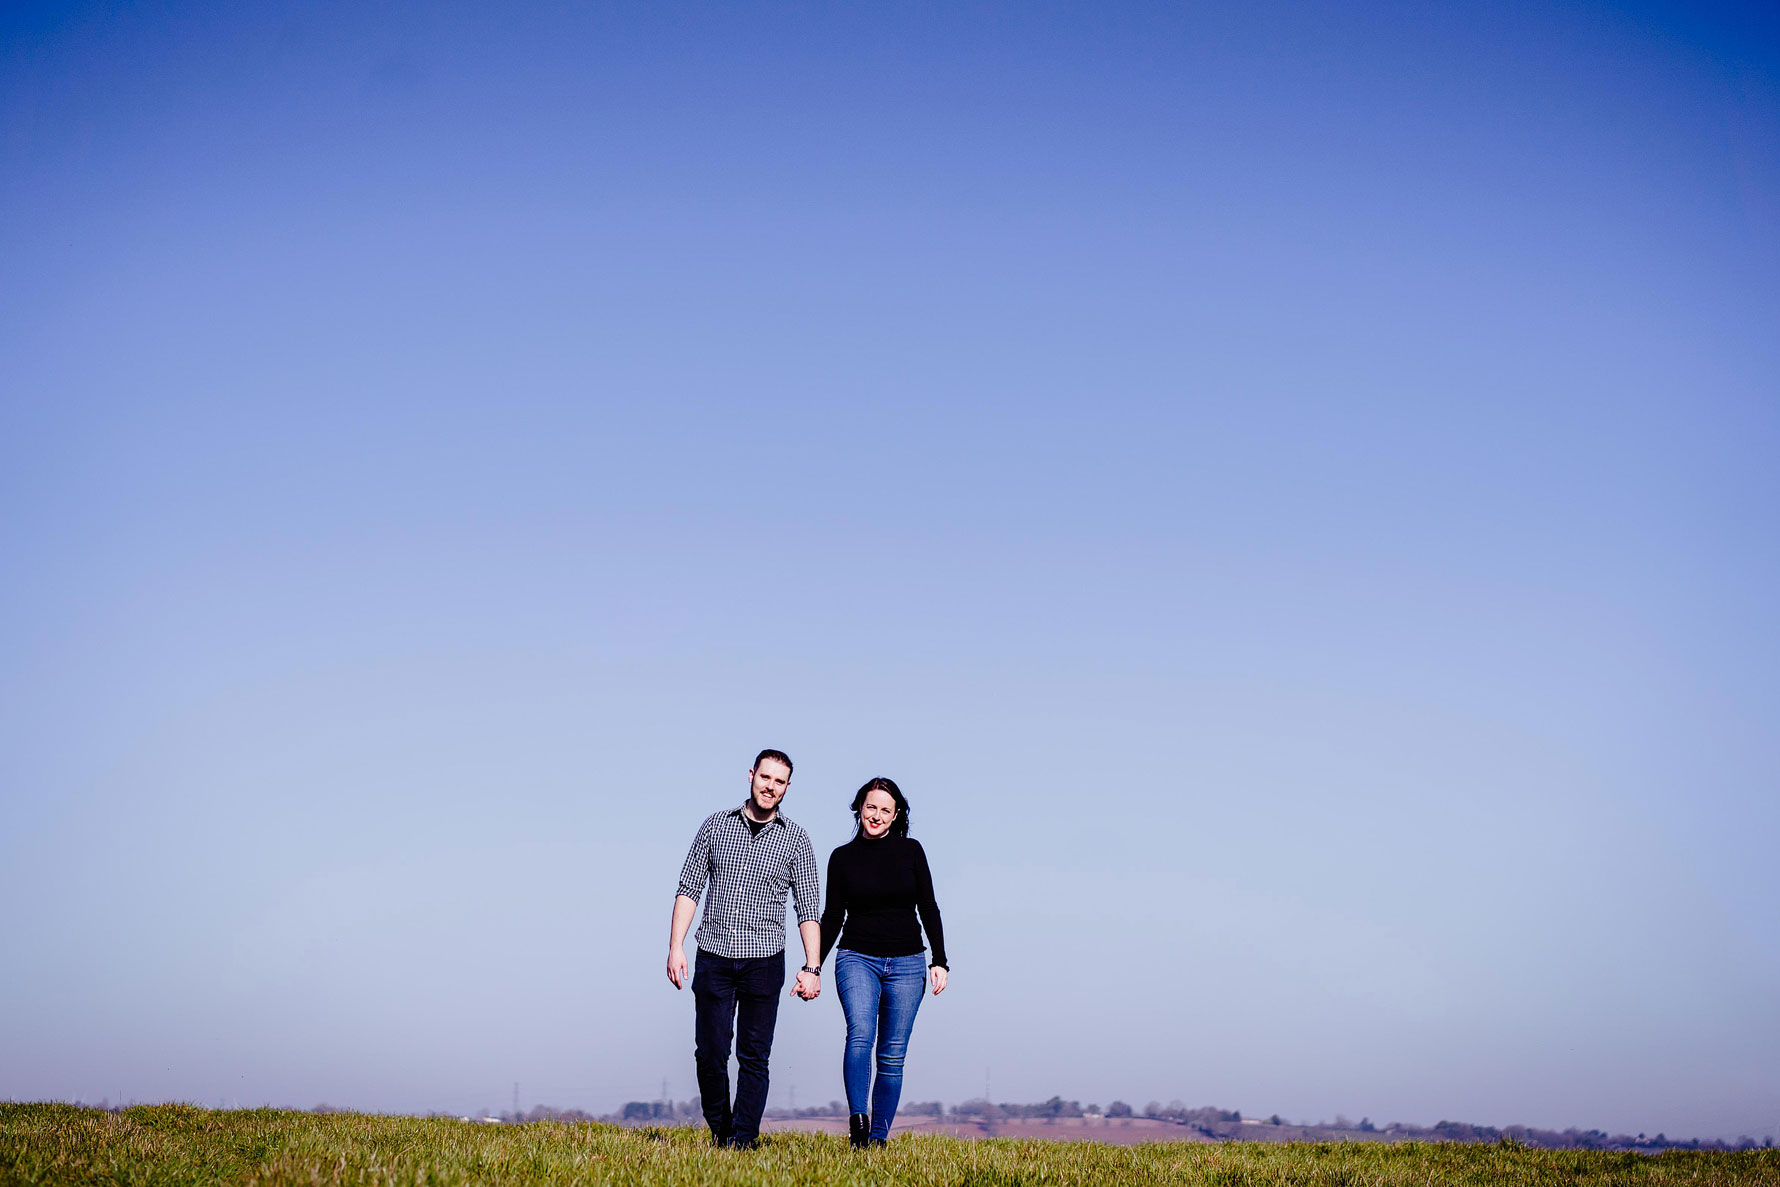 a images from an engagement shoot by Elliot w patching with a happy couple and a beautiful blue sky